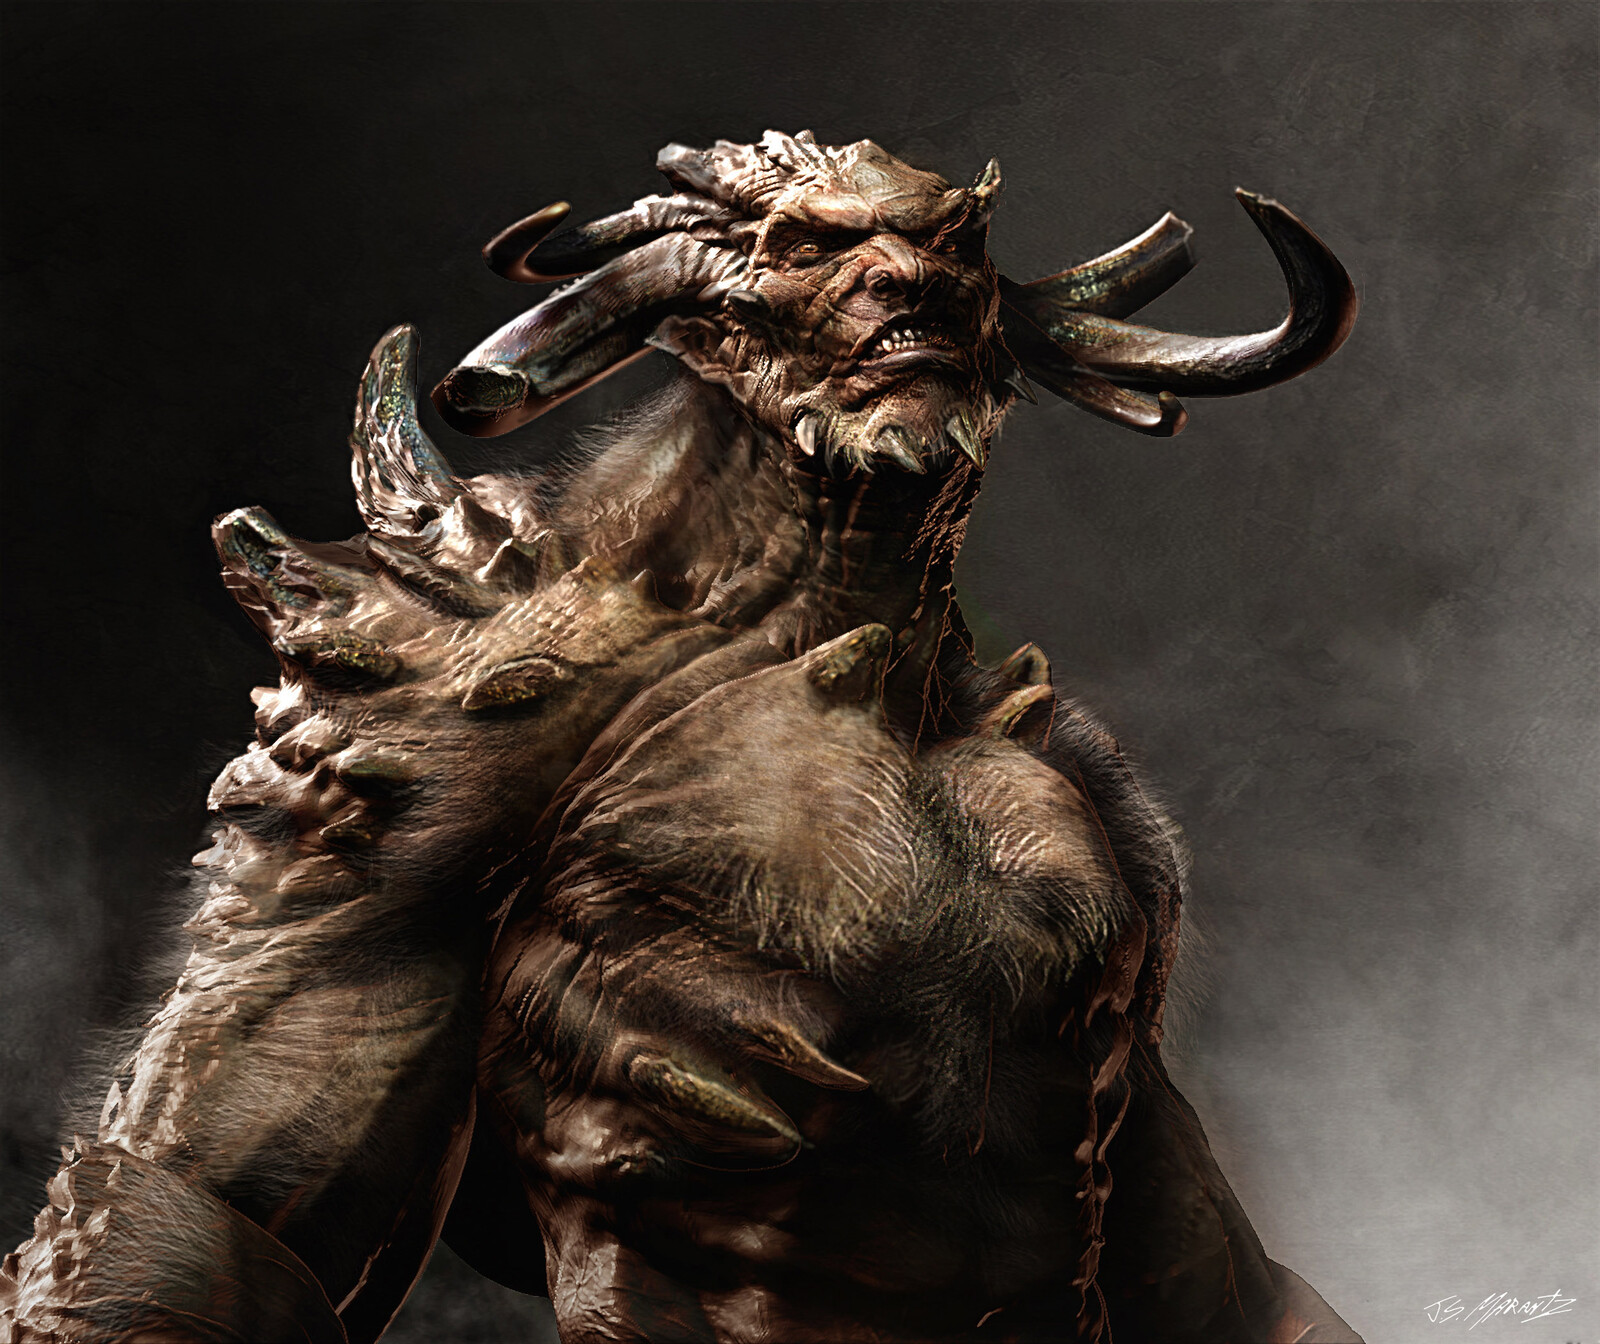 Wrath of the Titans Minotaur and Cyclops Concepts